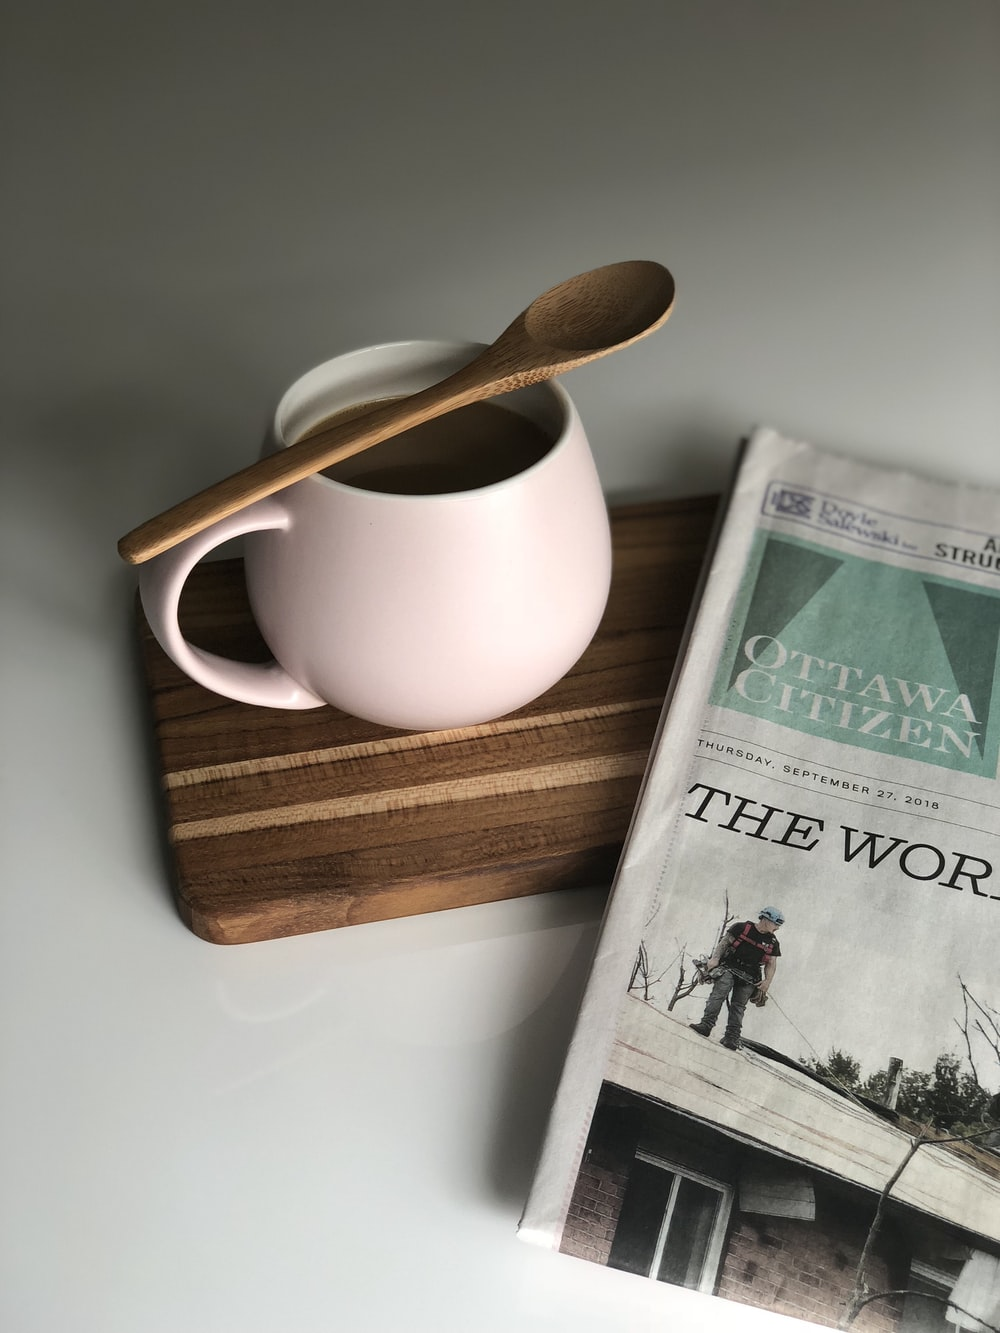 filled white ceramic mug and newspaper on white surface